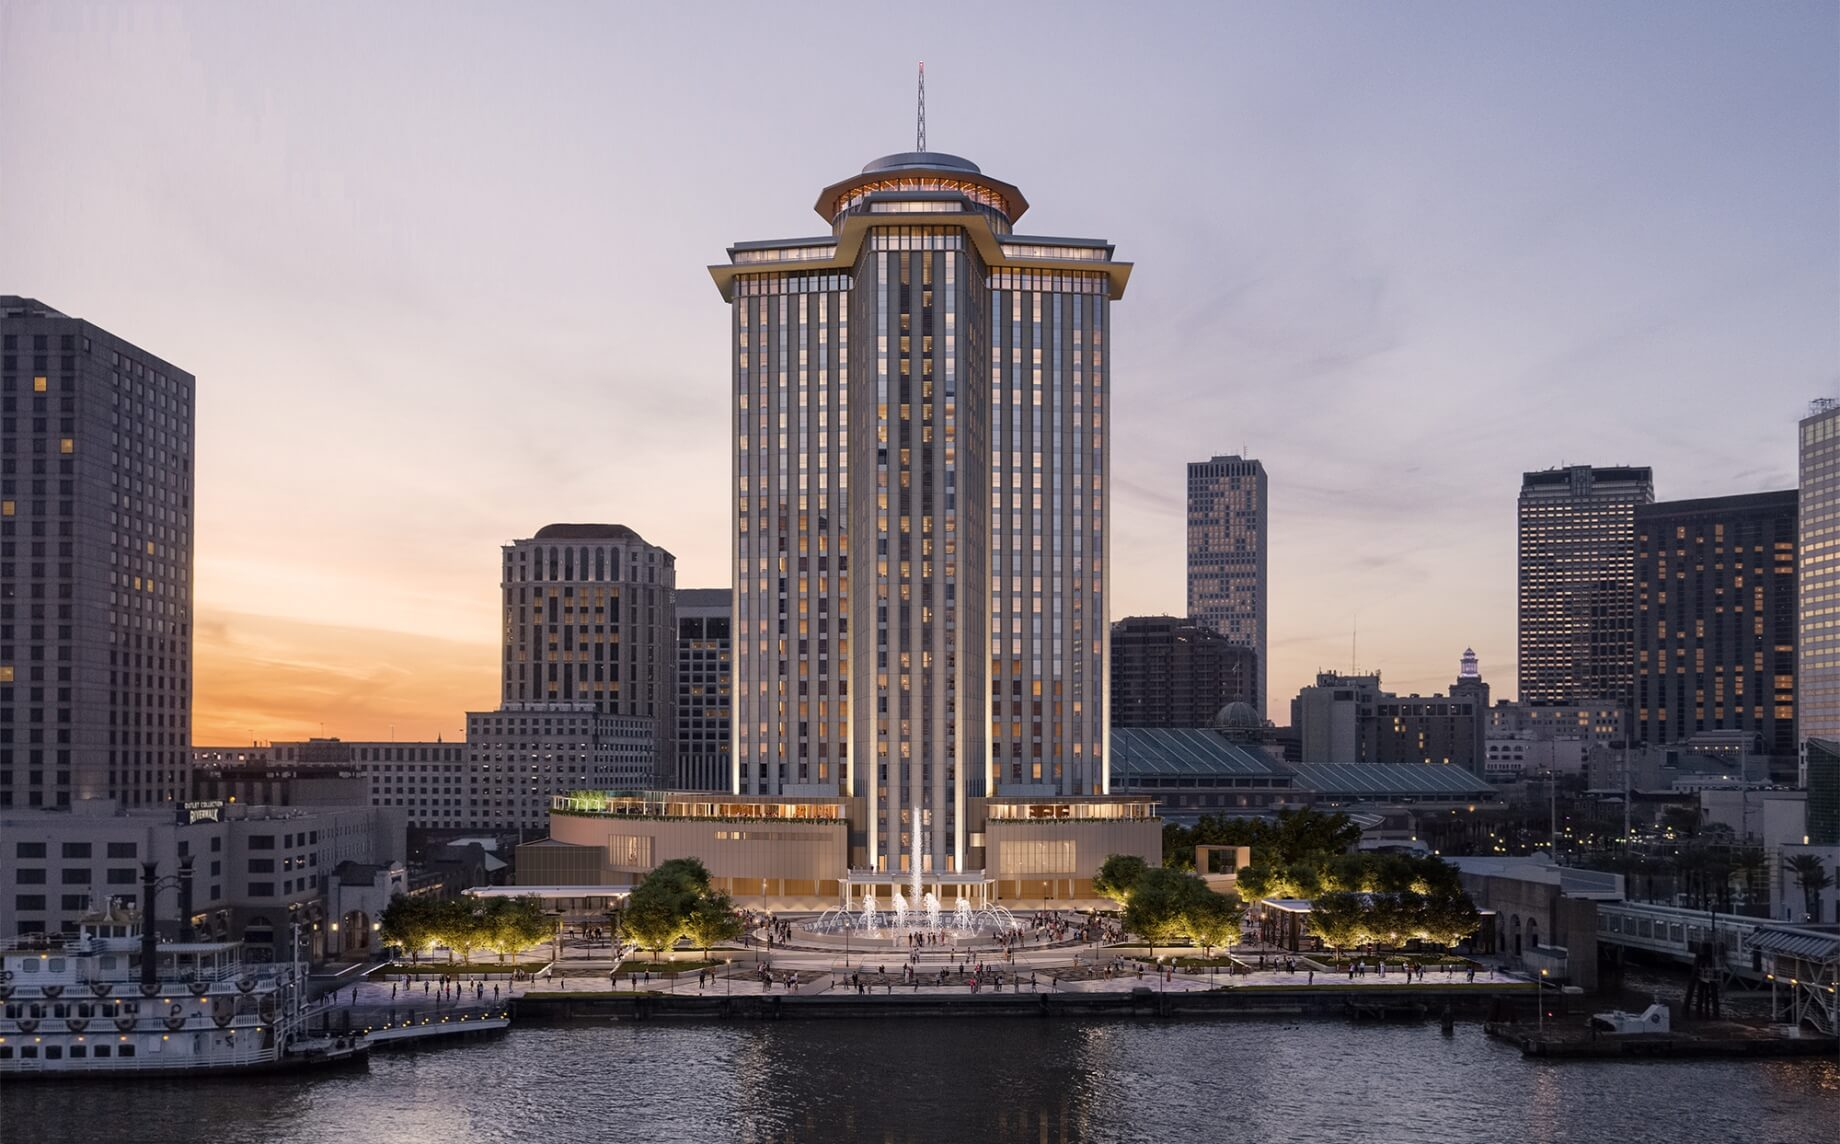 A rendering of the Four Seasons Hotel in New Orleans